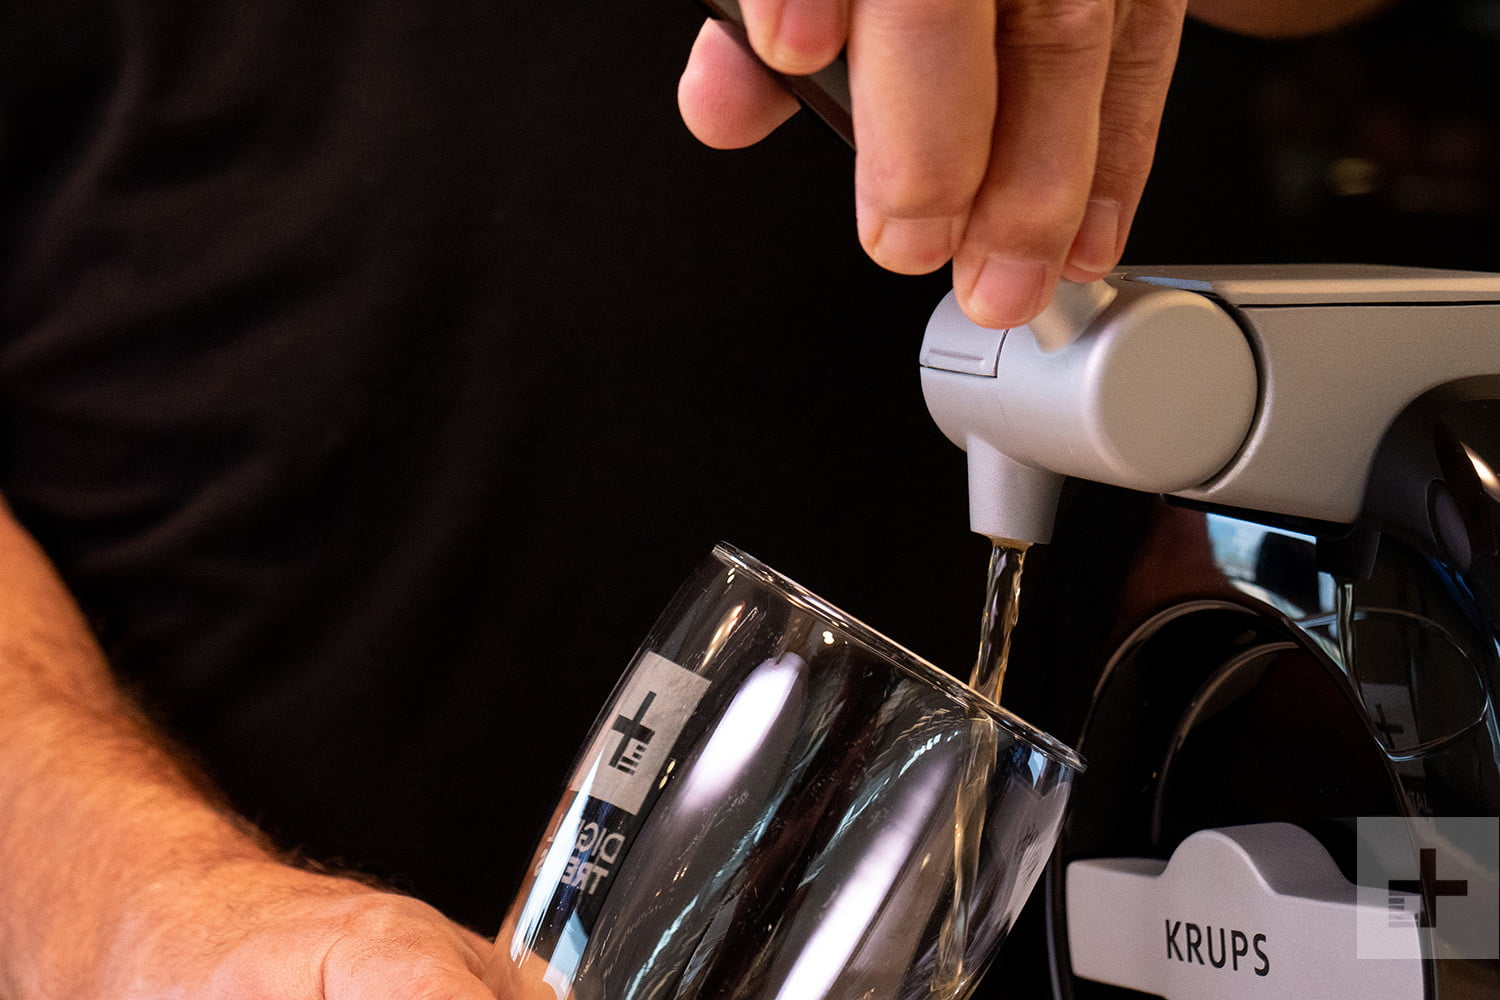 krups sub home beer dispenser pouring glass